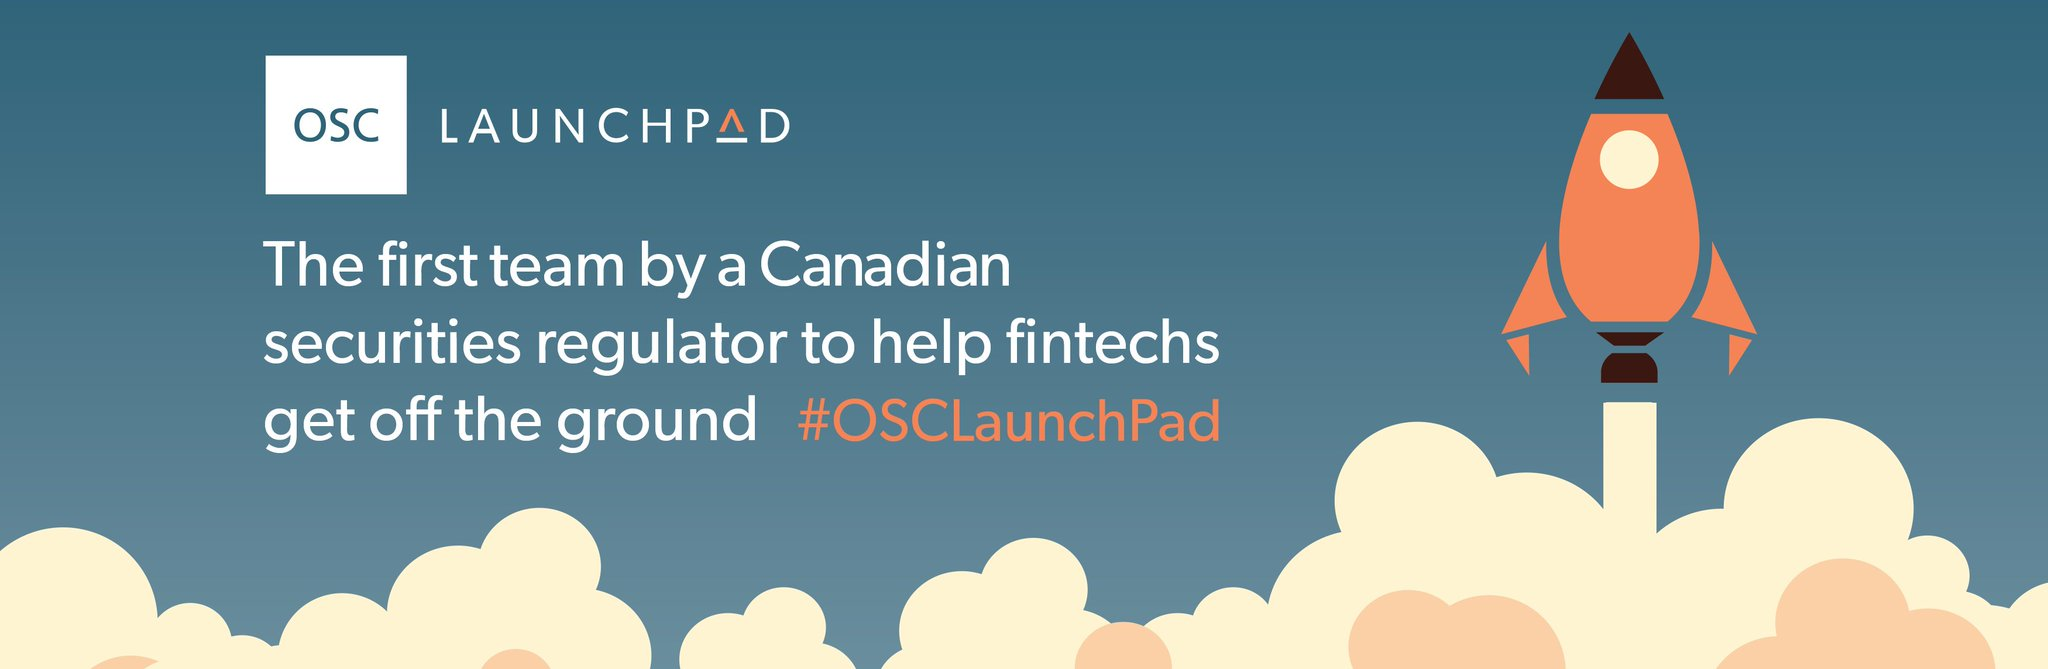 #OSCLaunchPad Chief Pat Chaukos will be speaking at @NCFACanada's Canadian Crowdfinance Summit 02/28-03/01: https://t.co/ZahLebAAB2 #CCS2017 https://t.co/lKECnPmpOs